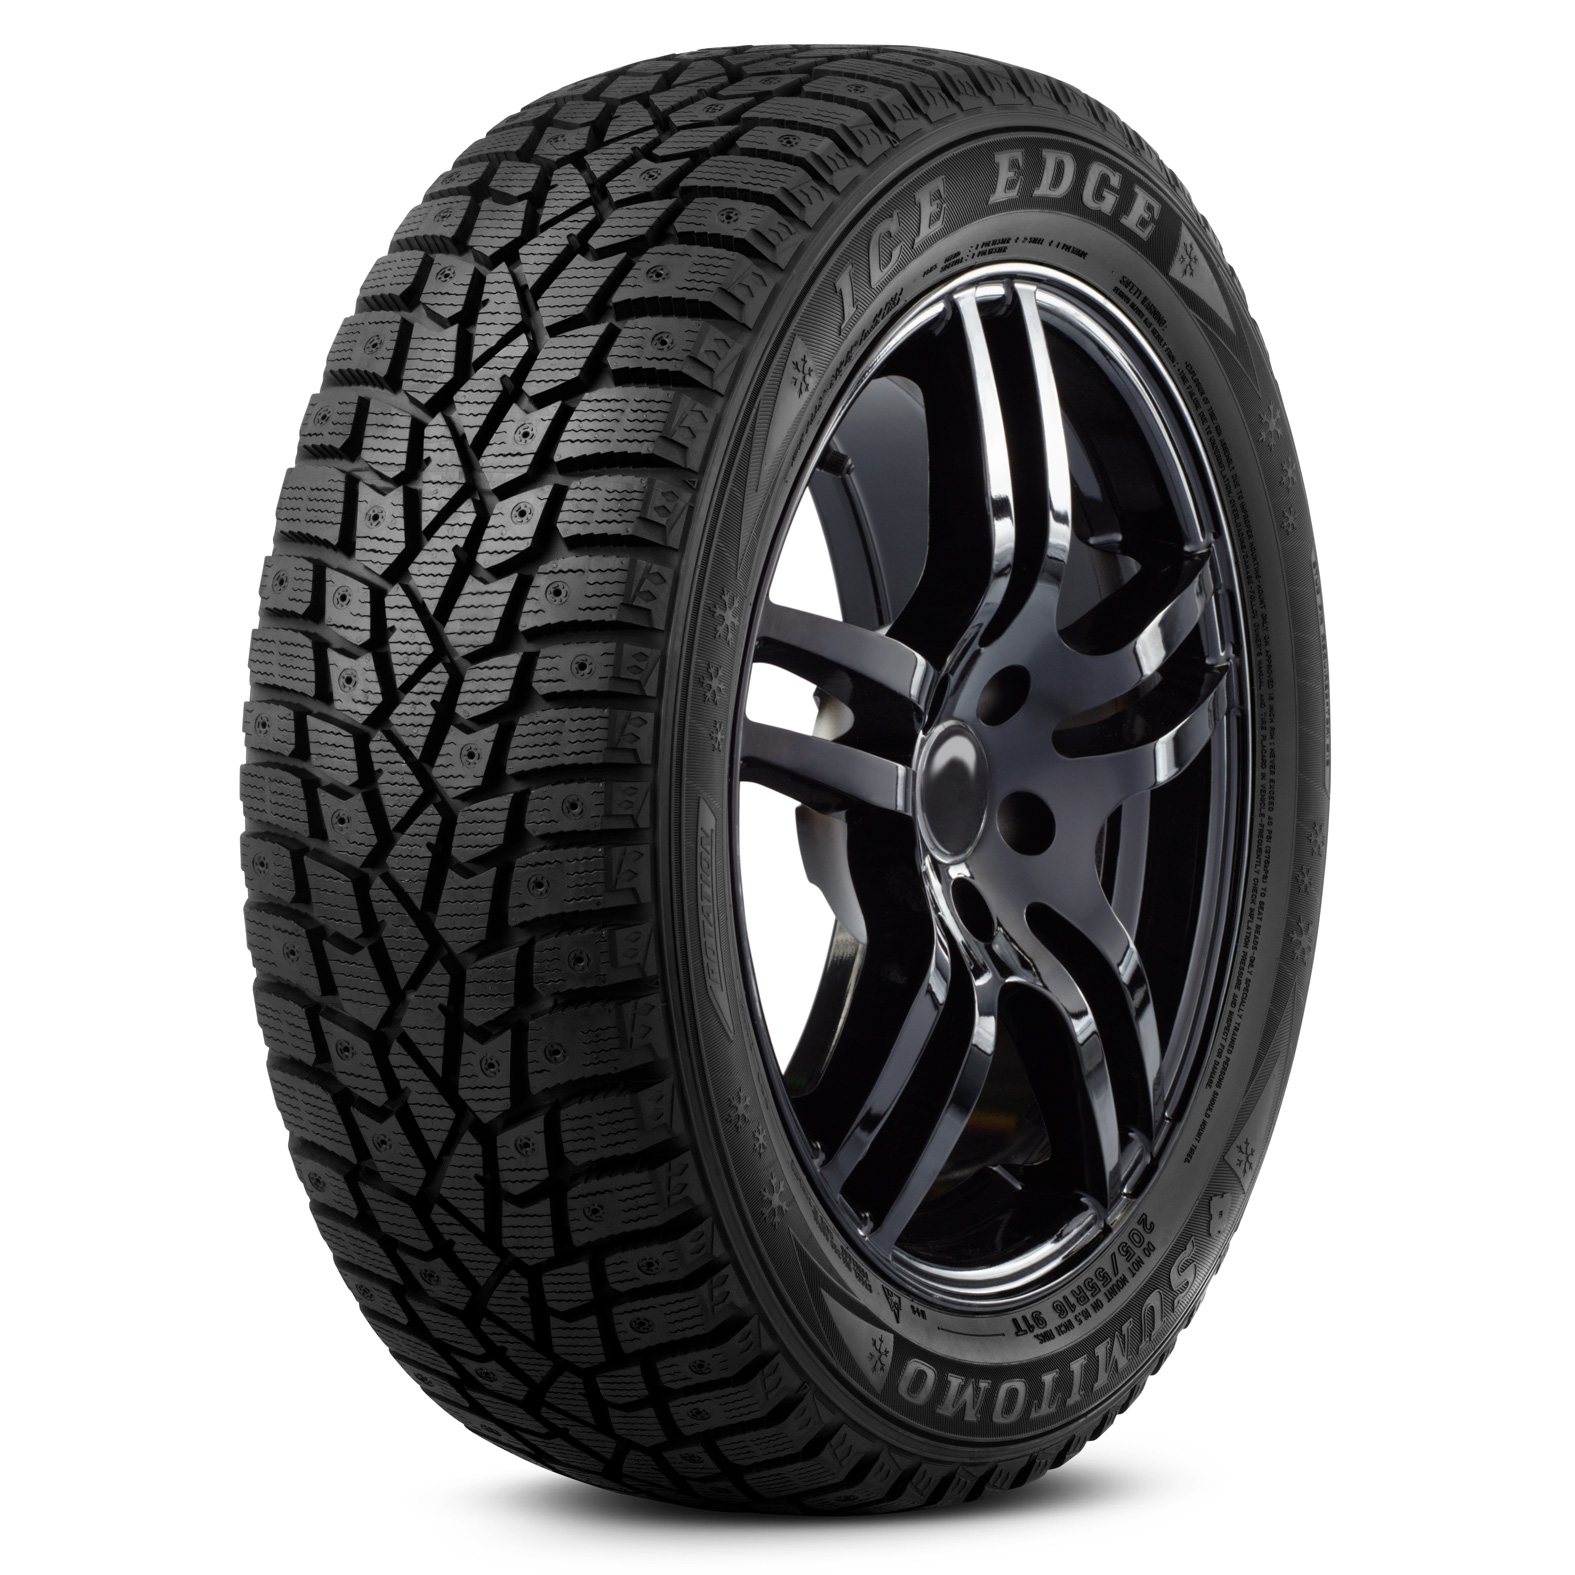 Sumitomo Ice Edge tire – angle